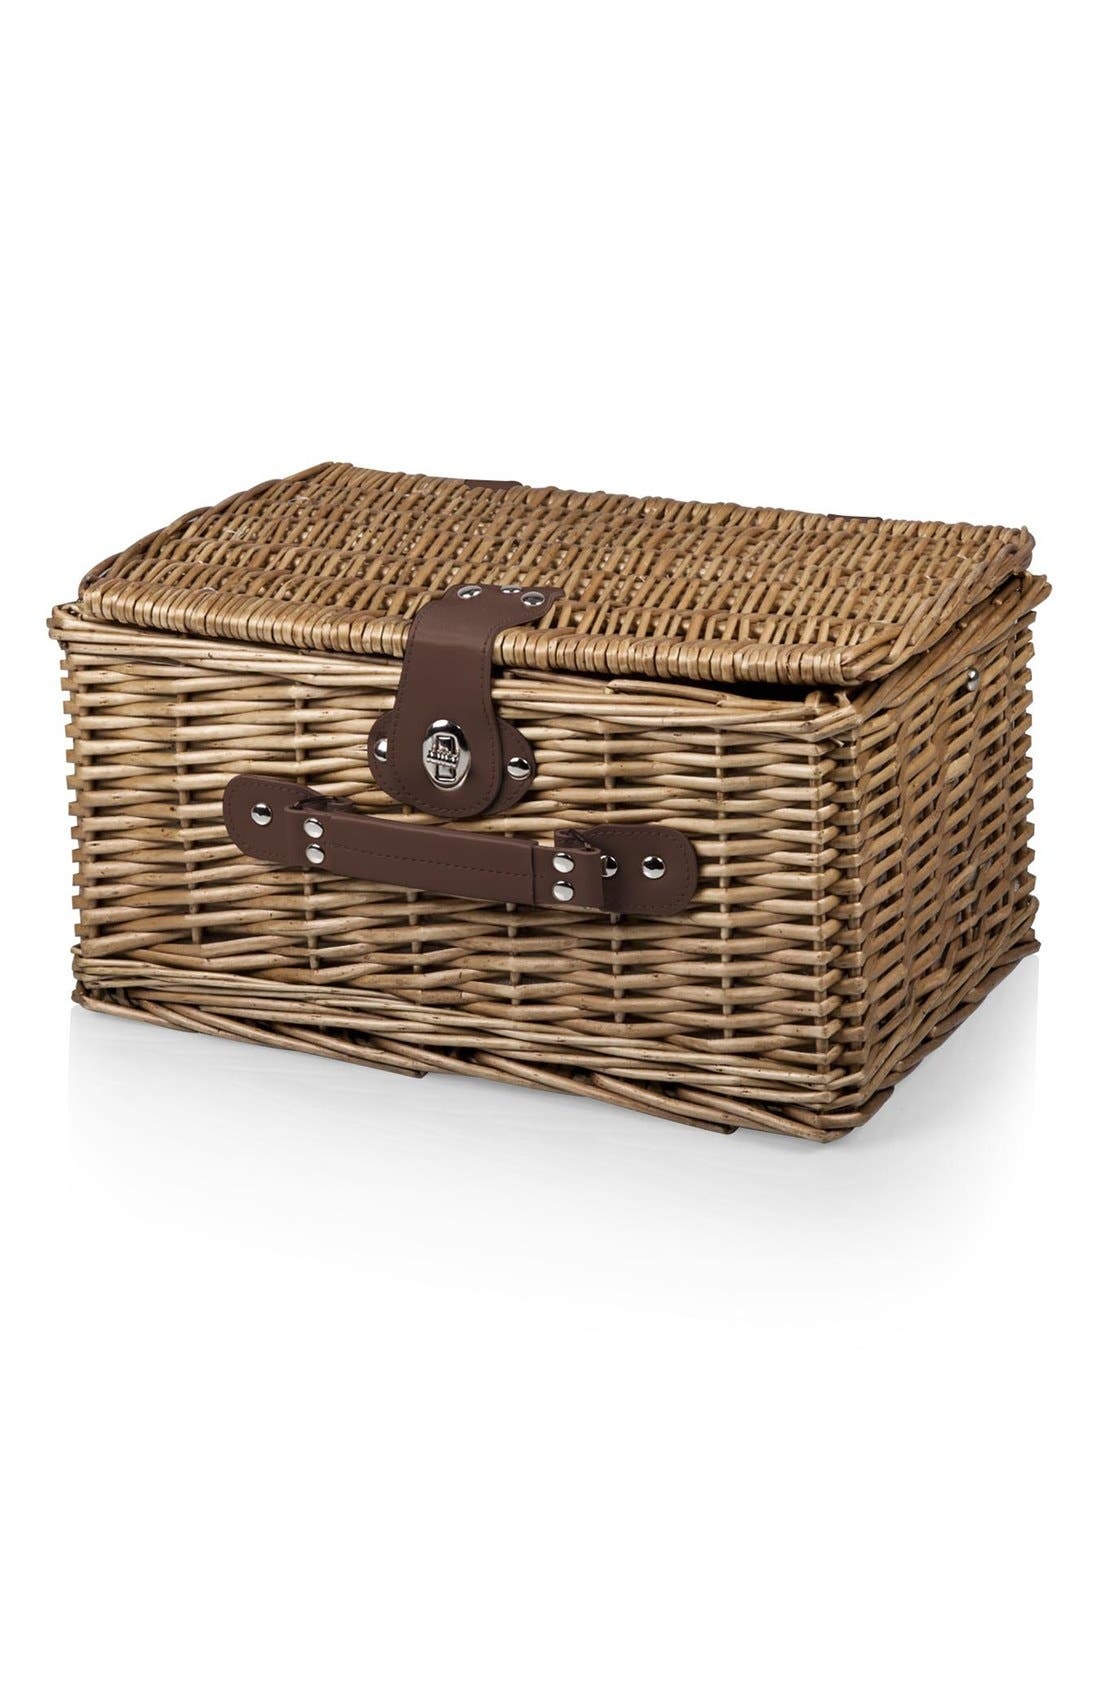 'Catalina' Wicker Picnic Basket,                             Alternate thumbnail 2, color,                             Blue